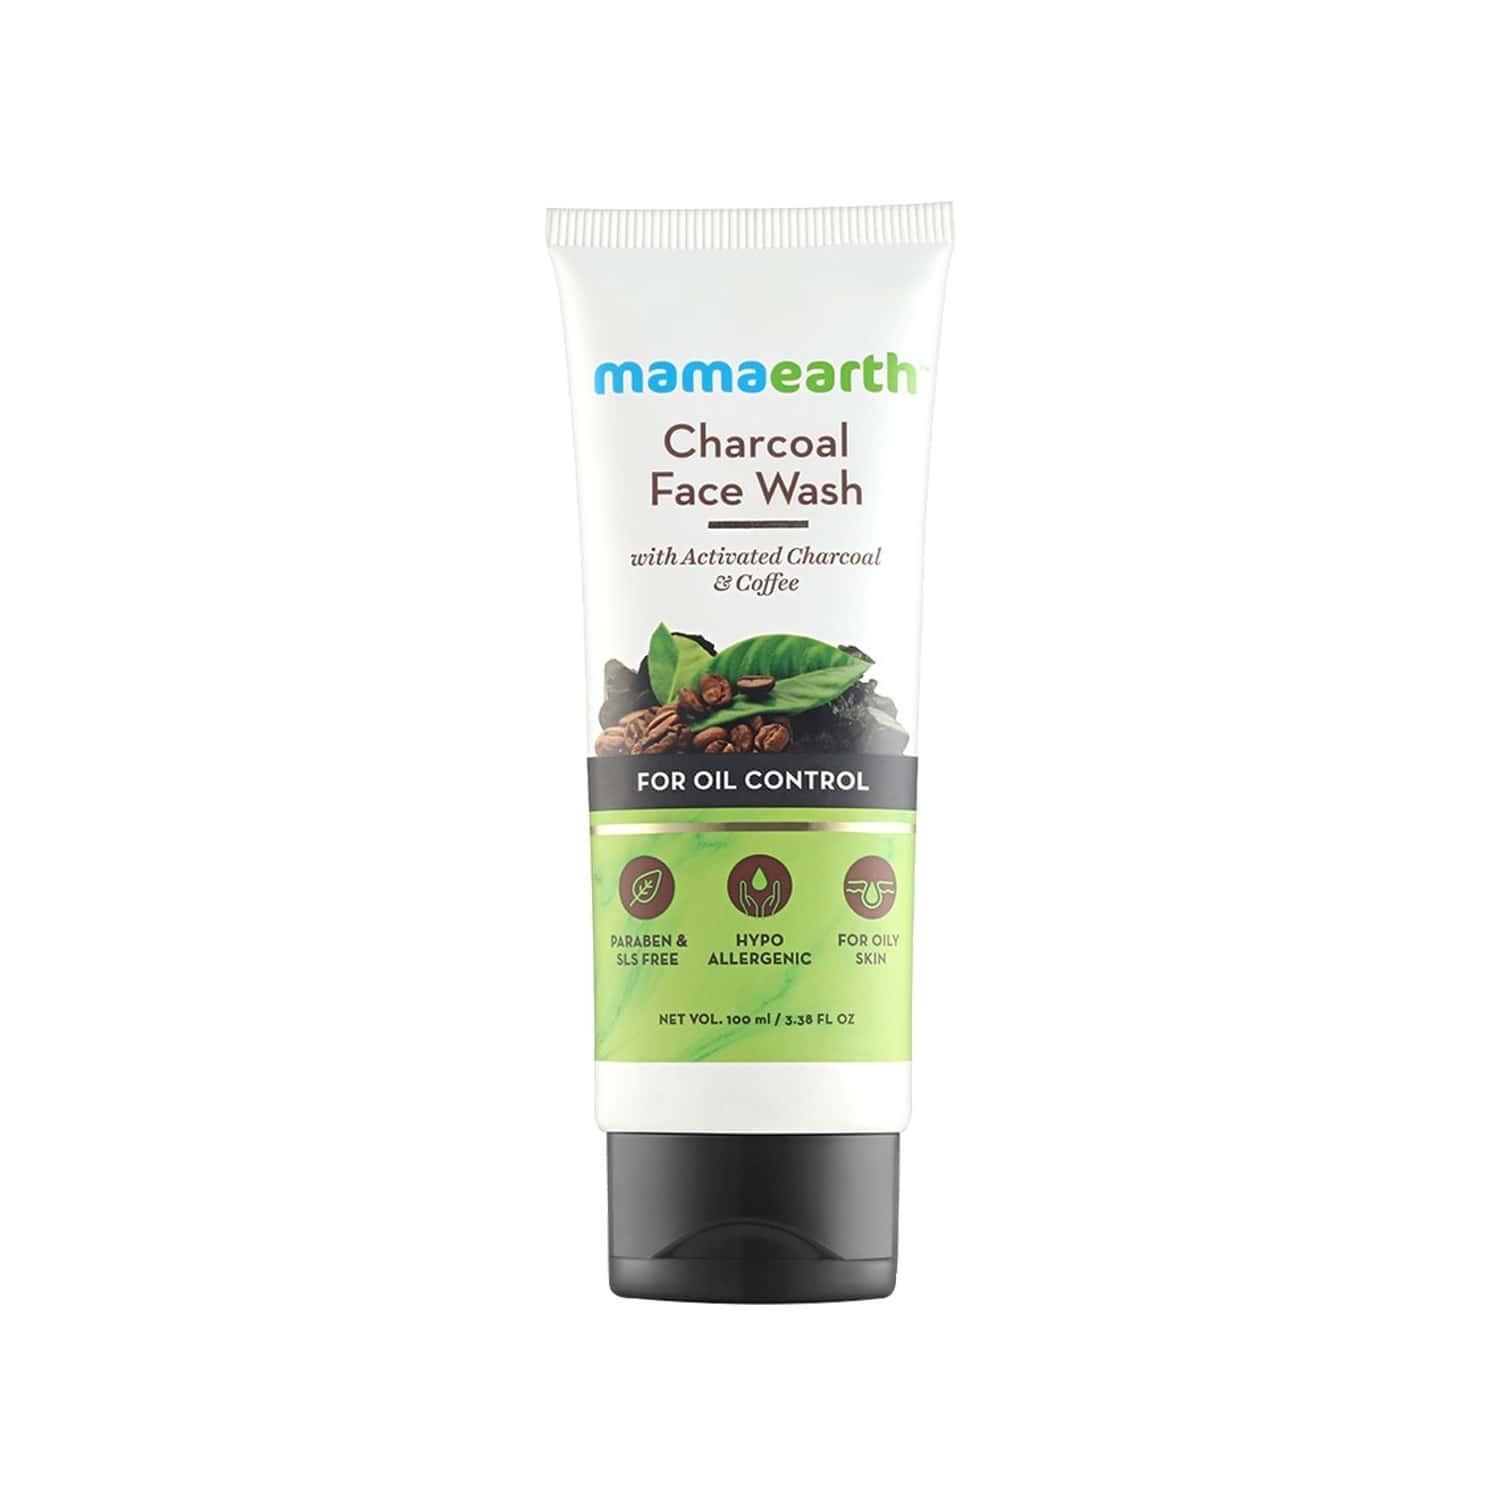 Mamaearth Charcoal Natural Face Wash For Oil Control And Pollution Defence - 100ml (pack Of 2)